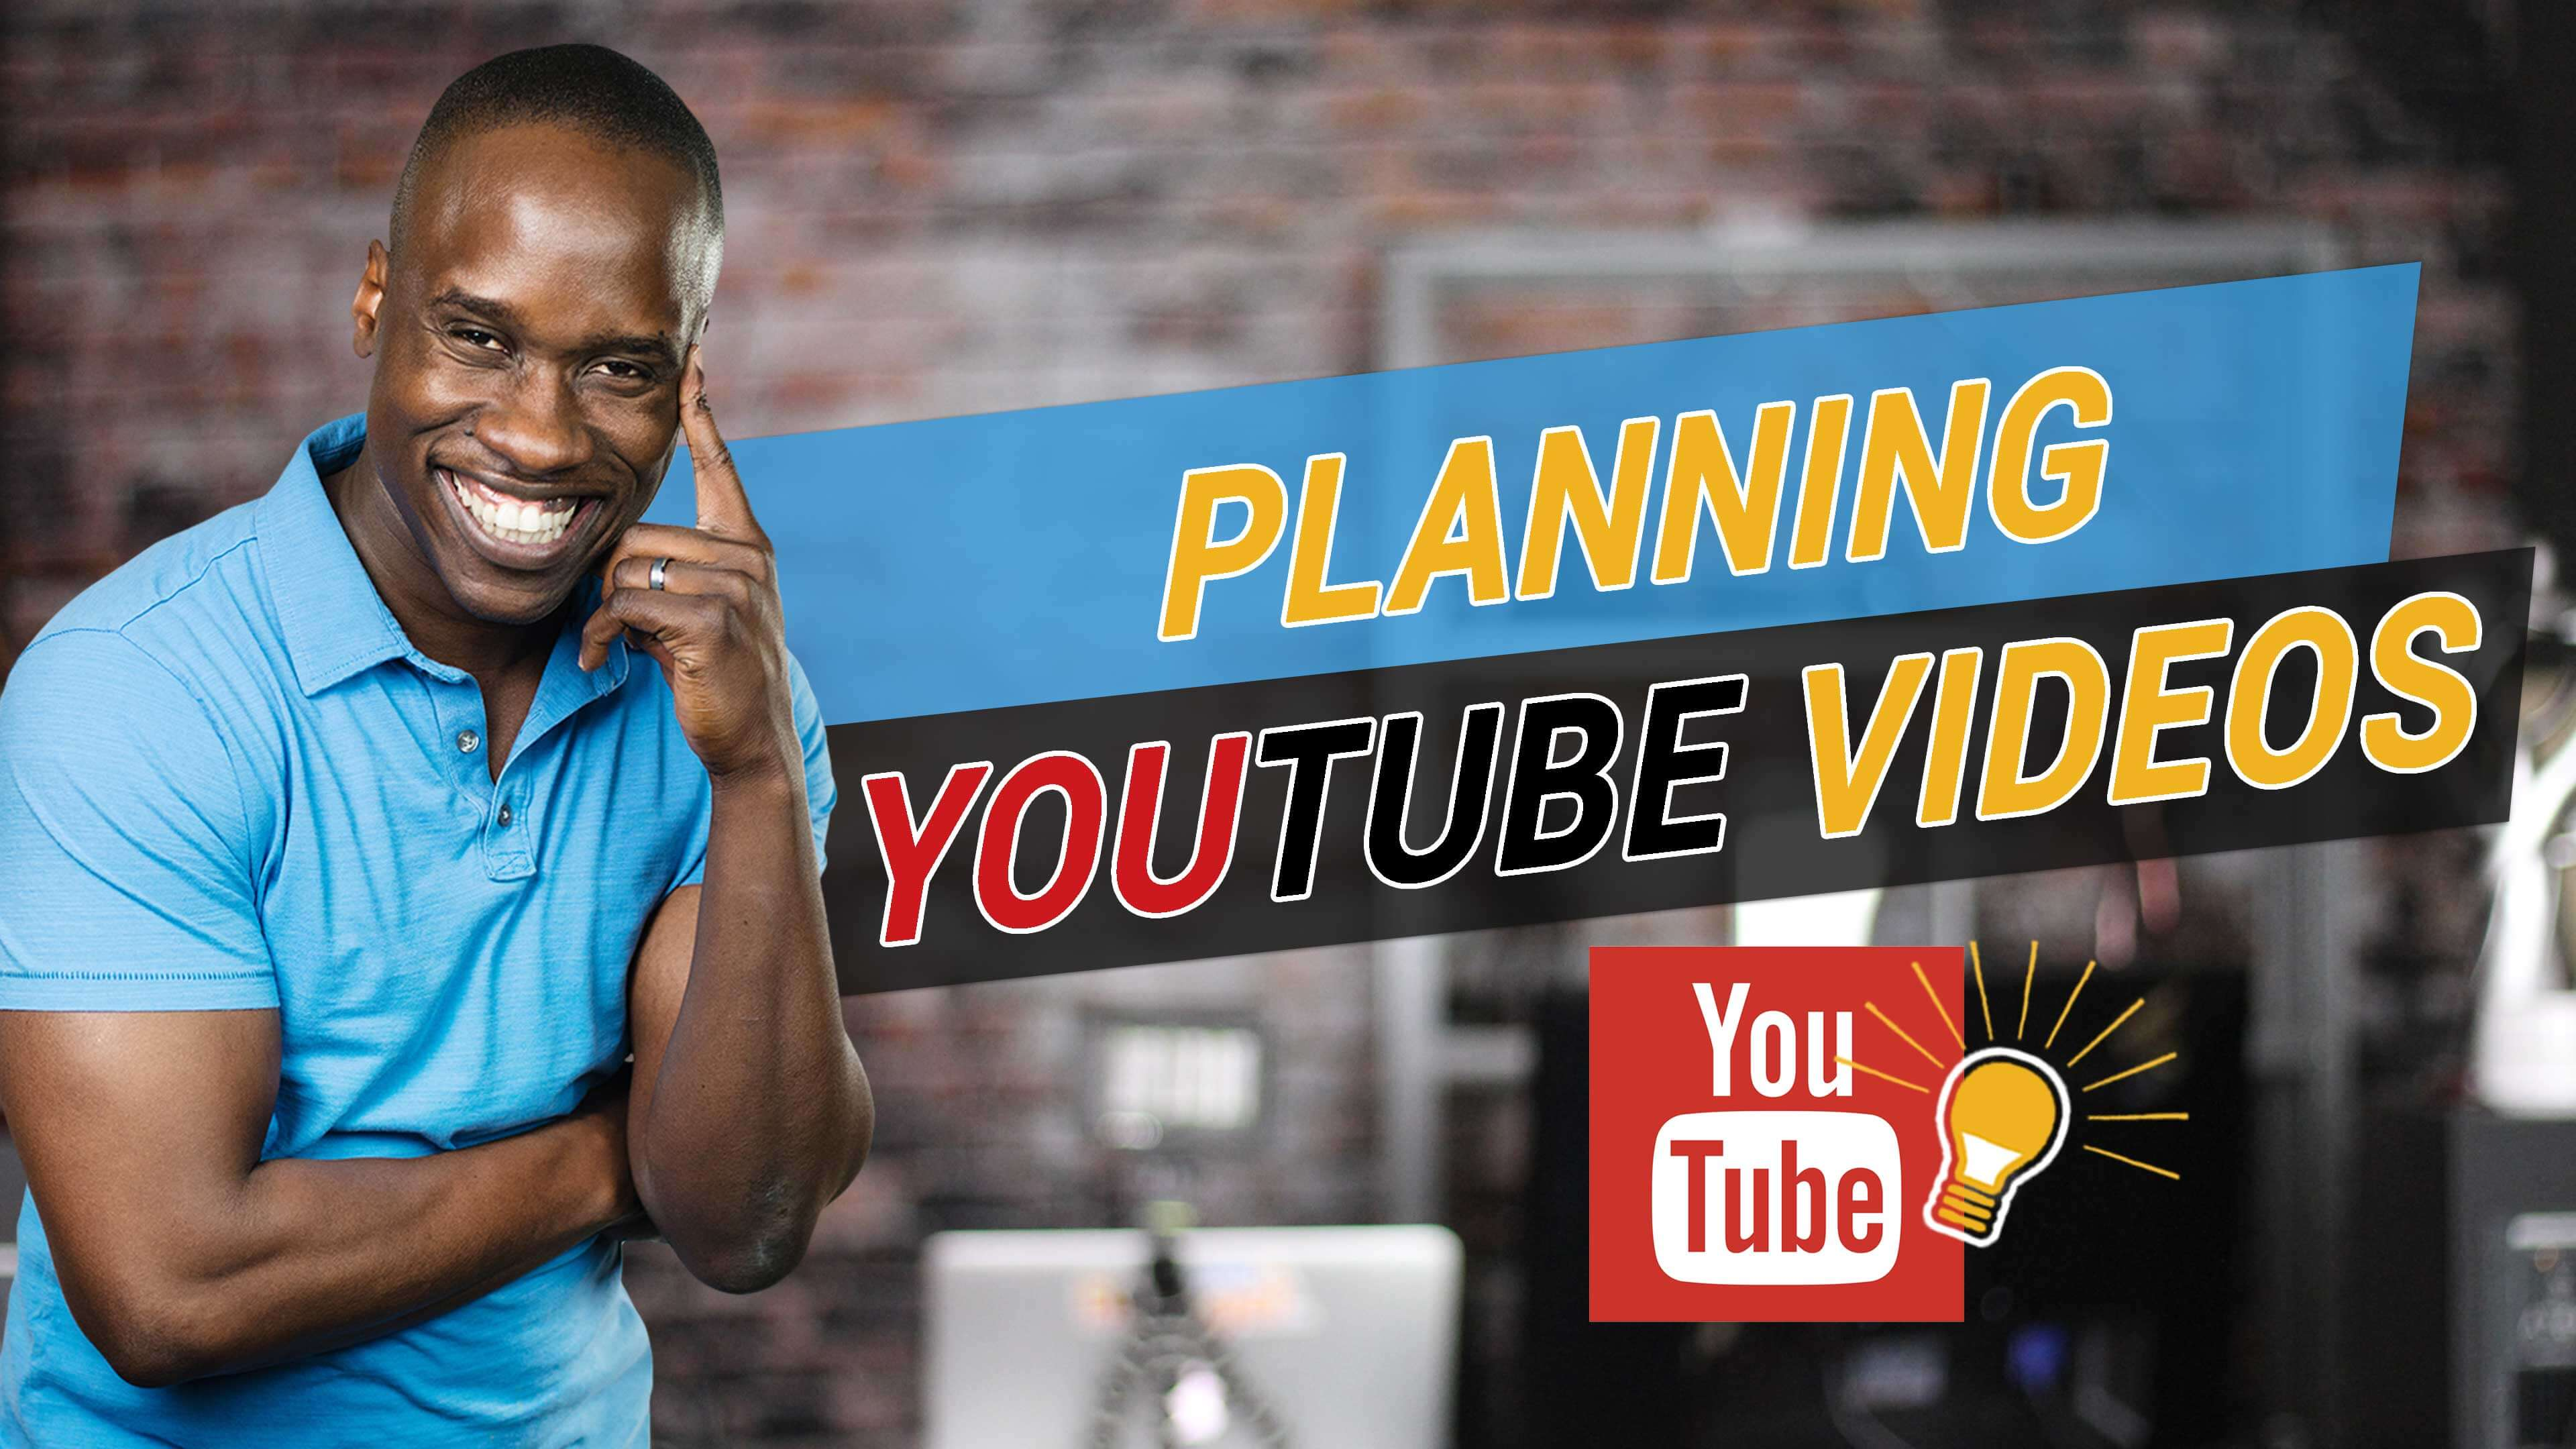 How to Plan Your YouTube Video Content